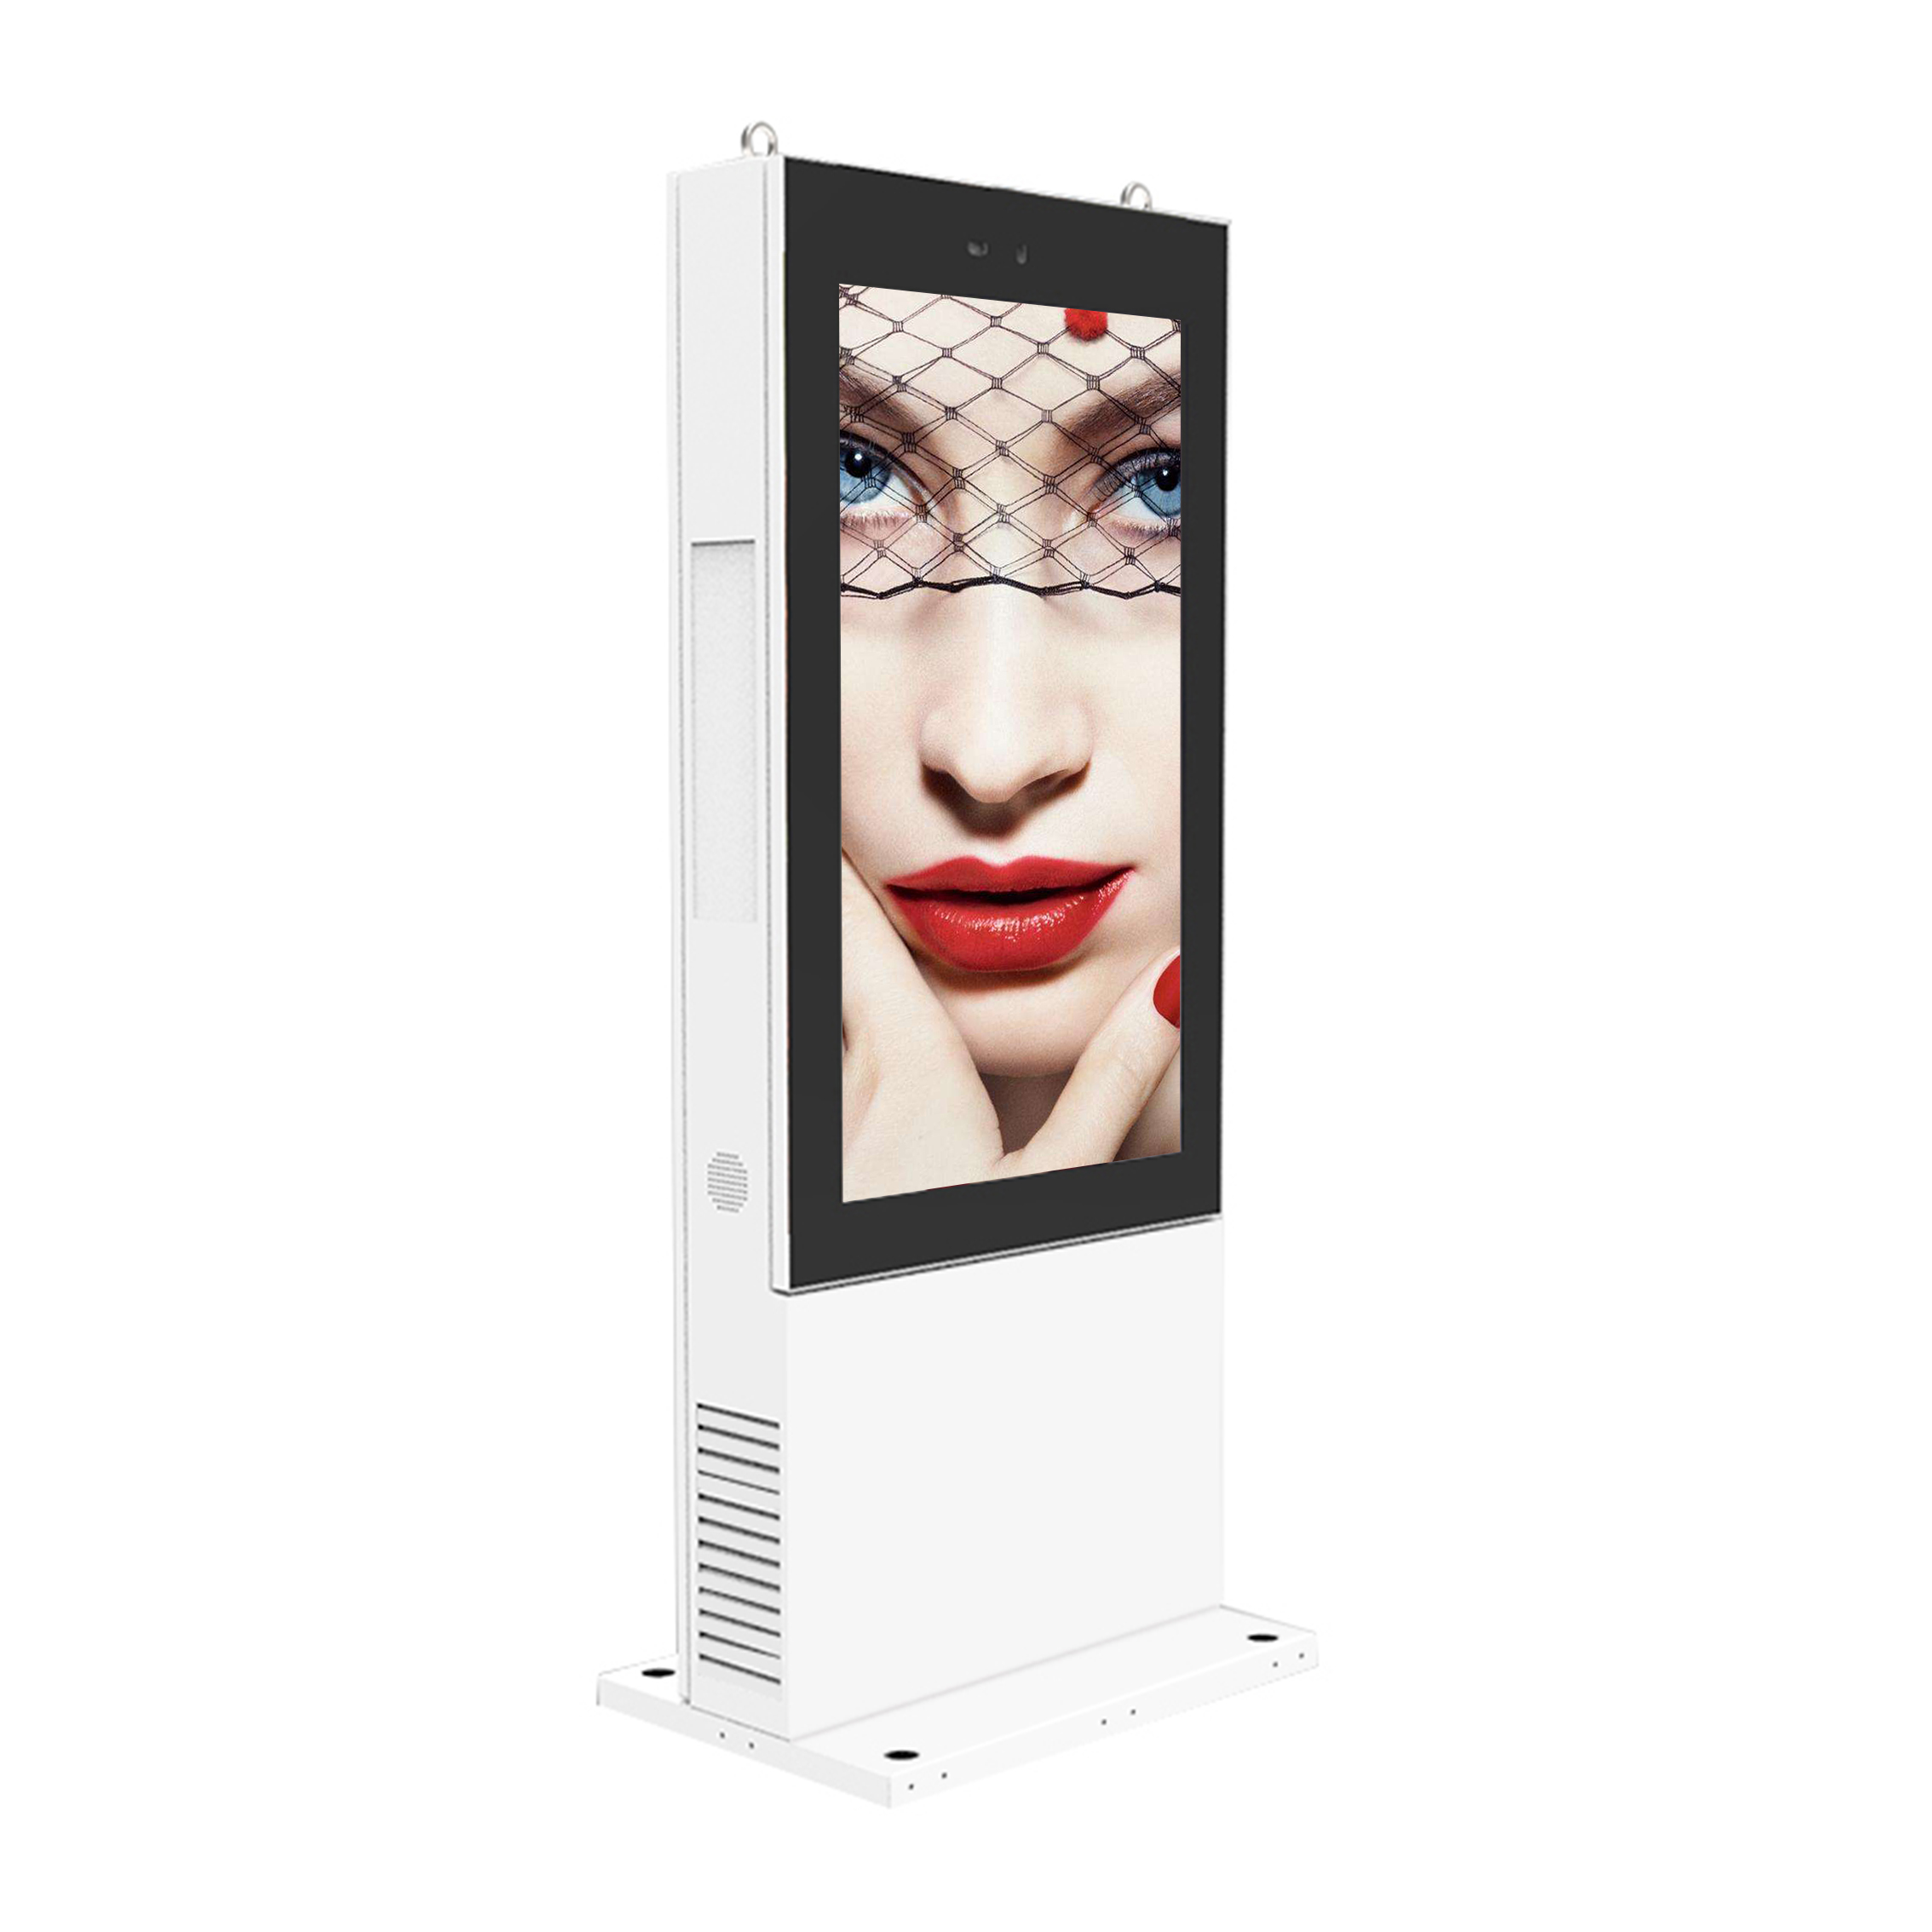 Outdoor self-service digital signage & interactive digital kiosk